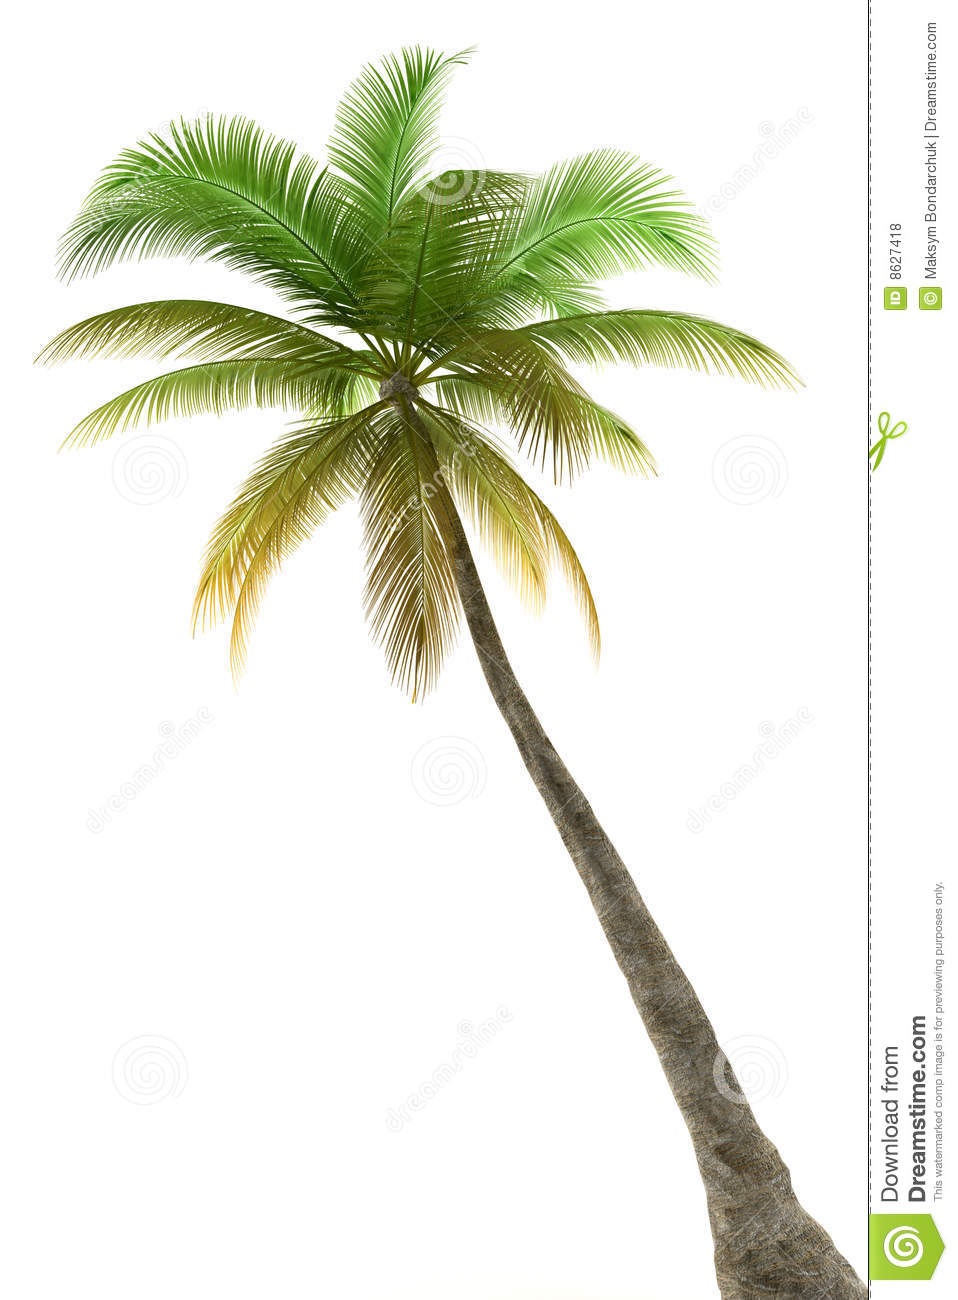 Palm Tree Isolated On White Background Royalty Free Stock Photos Image 8627418